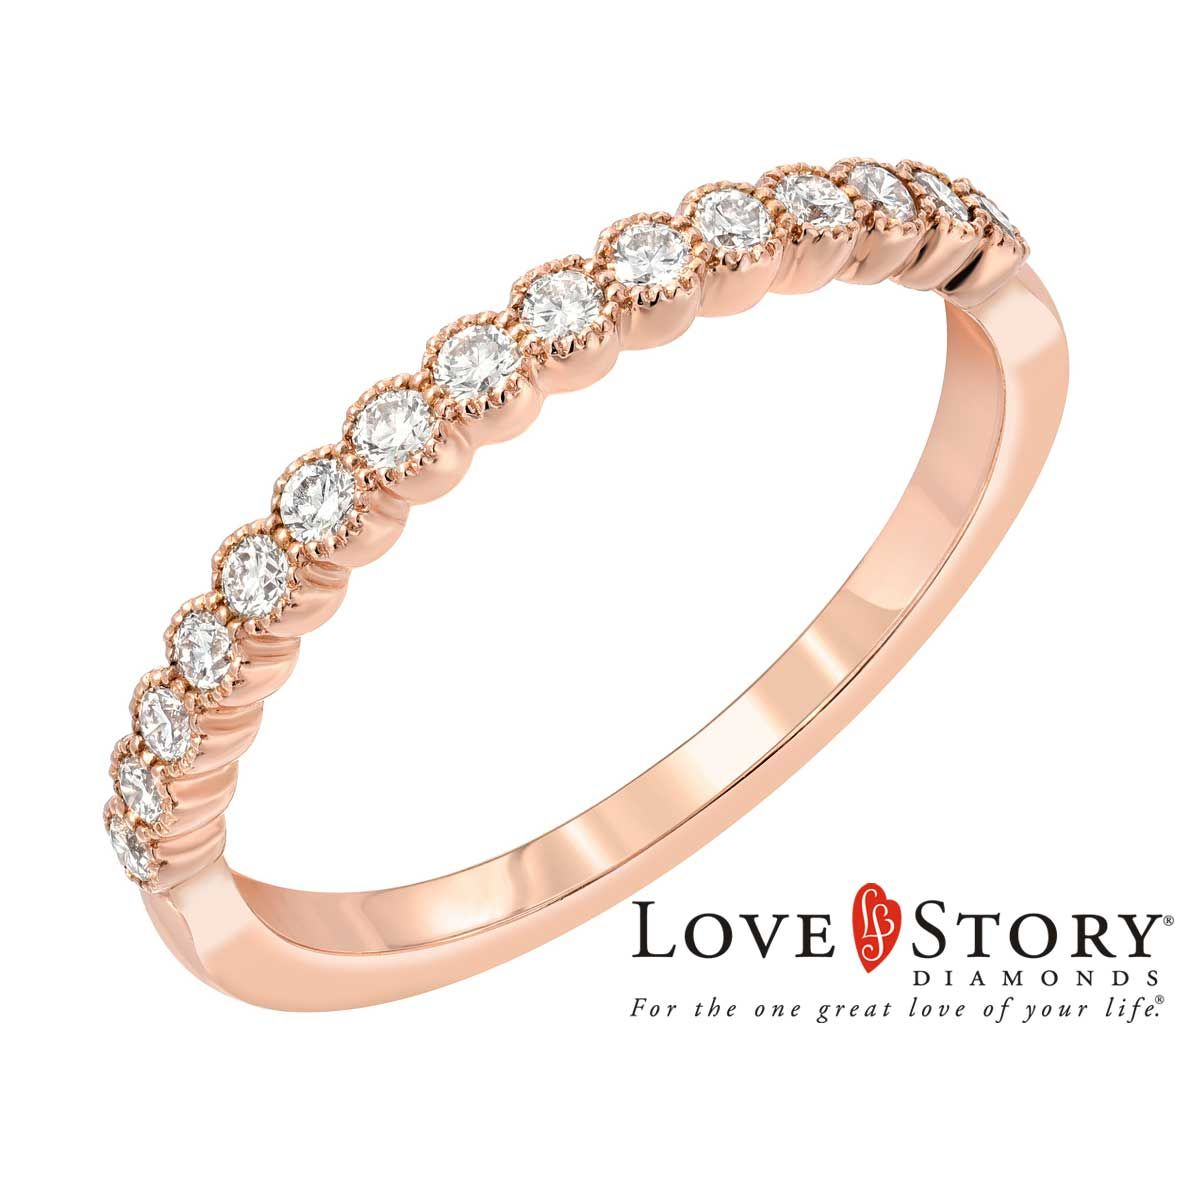 Love Story® Vintage Style Diamond Anniversary Band In 14k Rose Gold, 1/4ctw Pertaining To Current Diamond Anniversary Bands In Rose Gold (View 18 of 25)